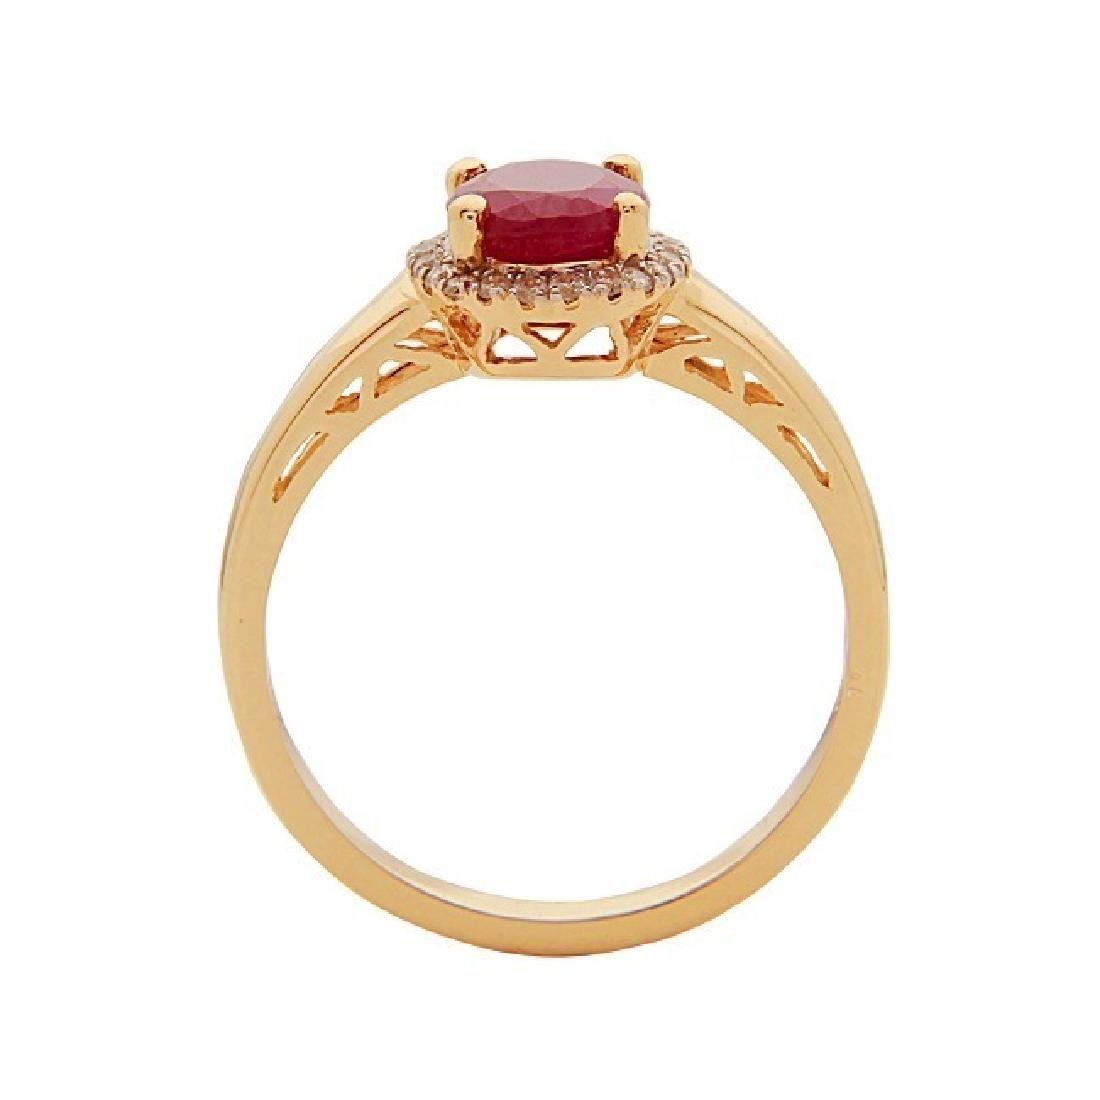 1.7 ctw Ruby and Diamond Ring - 10KT Yellow Gold - 2